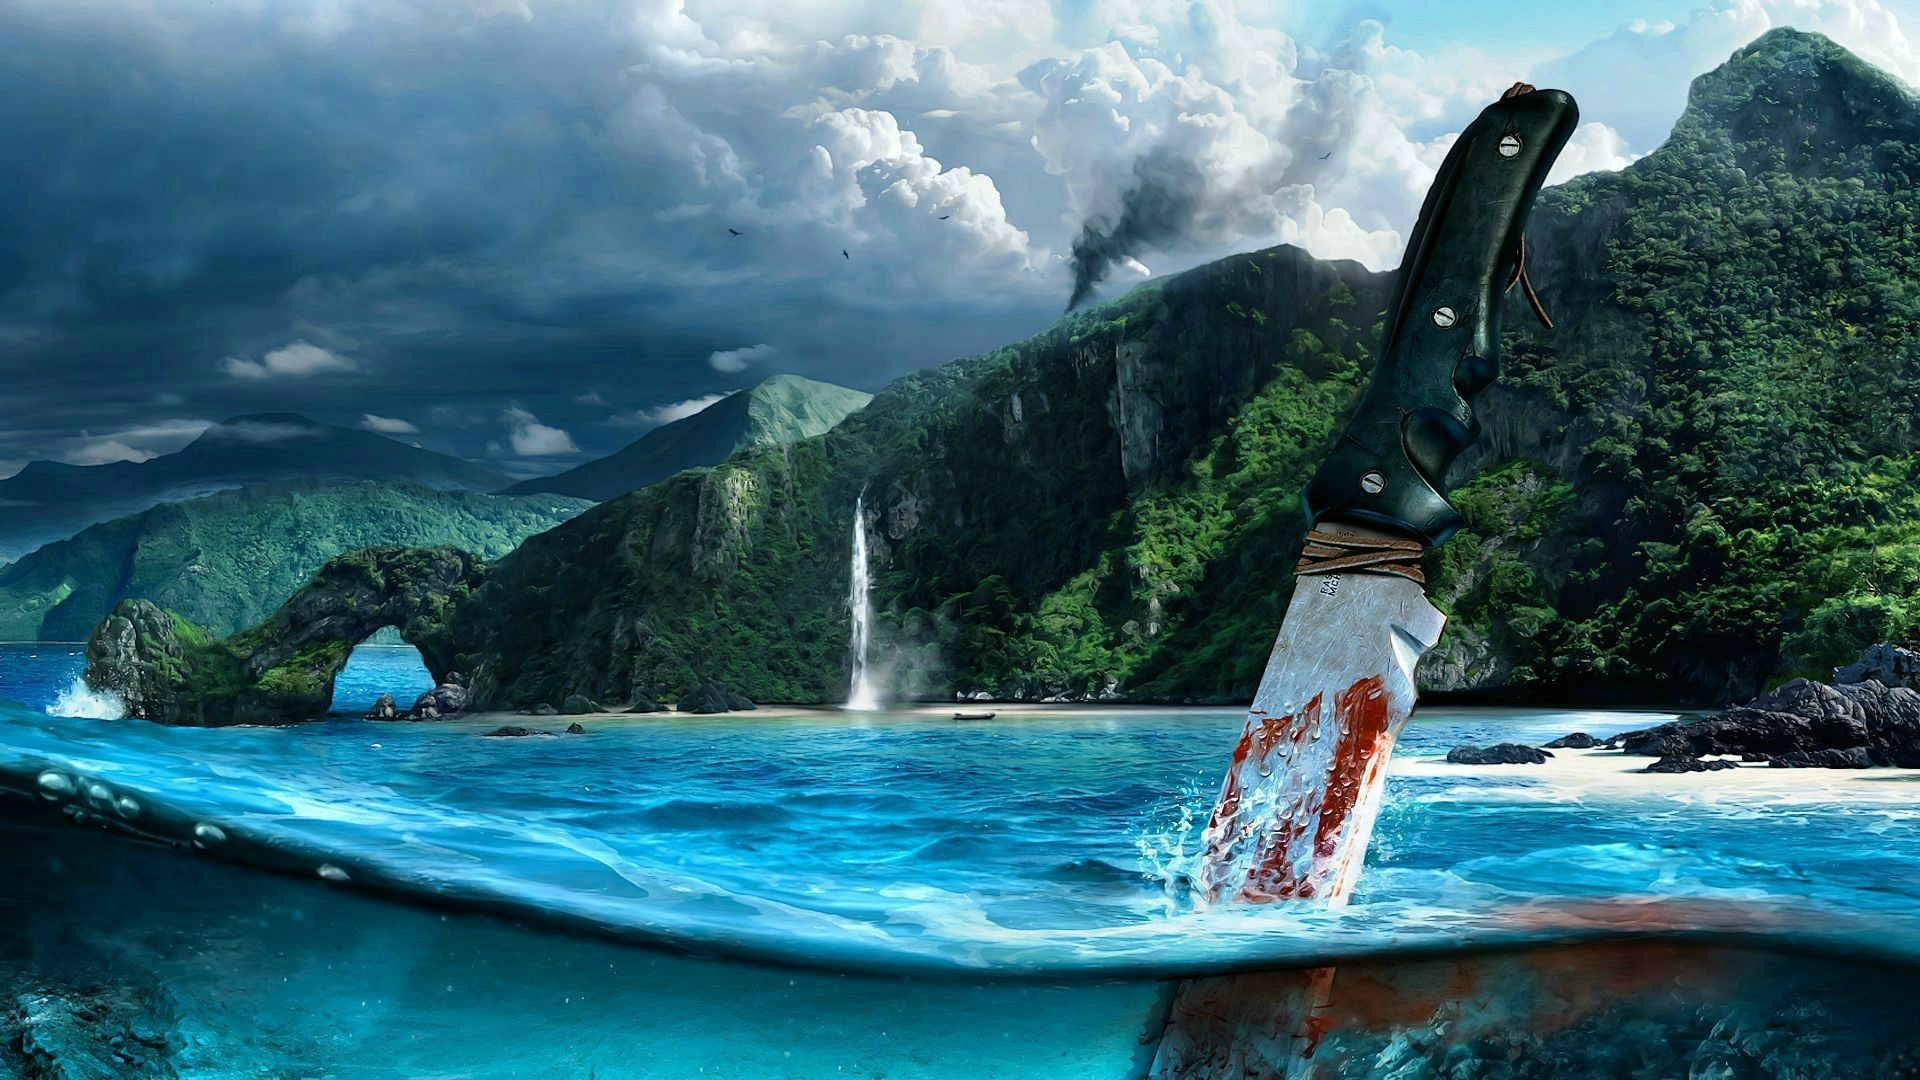 Far Cry 3 Knife In Water Wallpaper 1920x1080 px